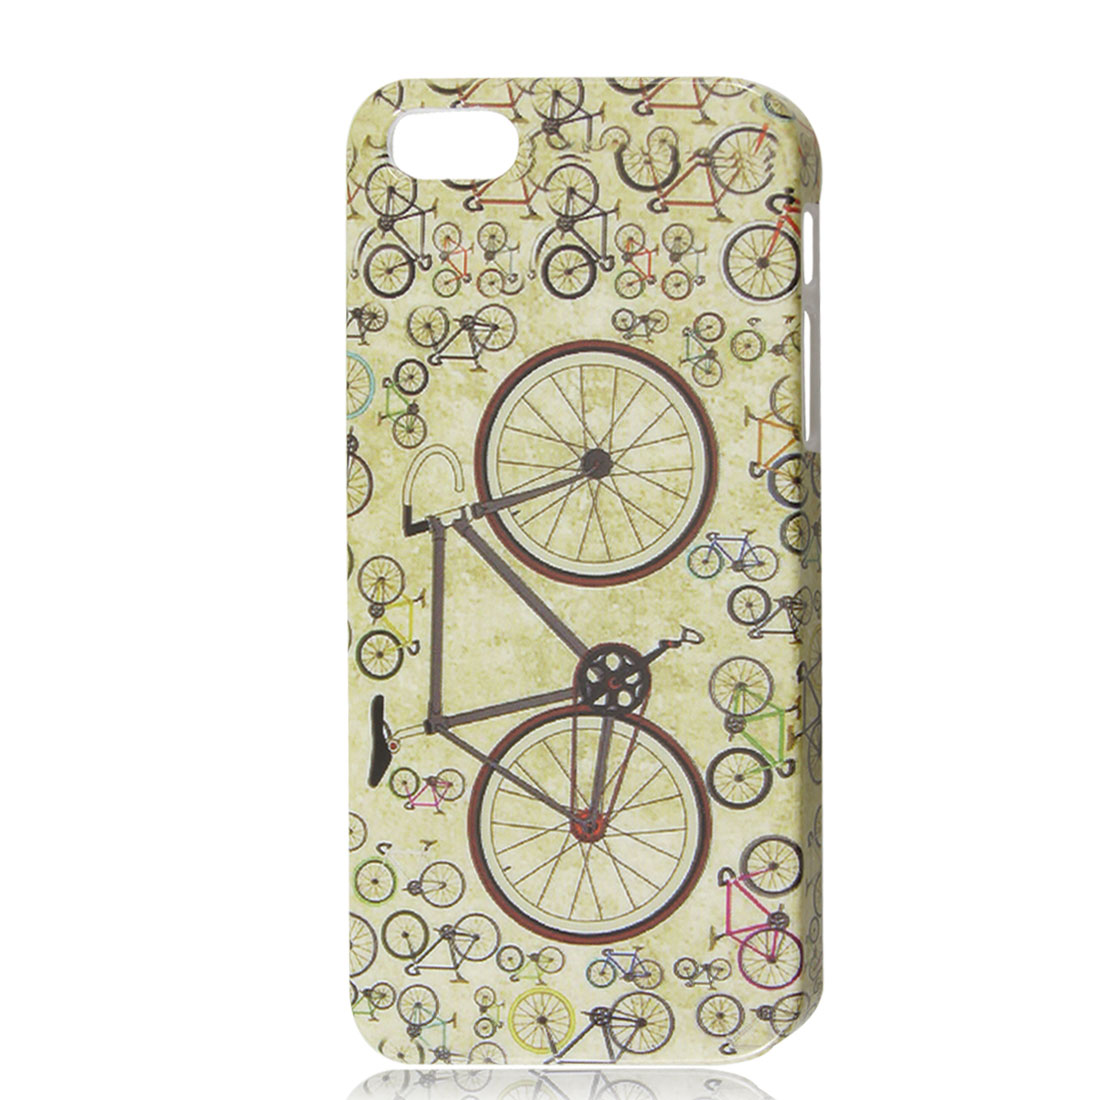 Retro Style Bicycle Pattern Hard Skin Case Cover for iPhone 5 5G